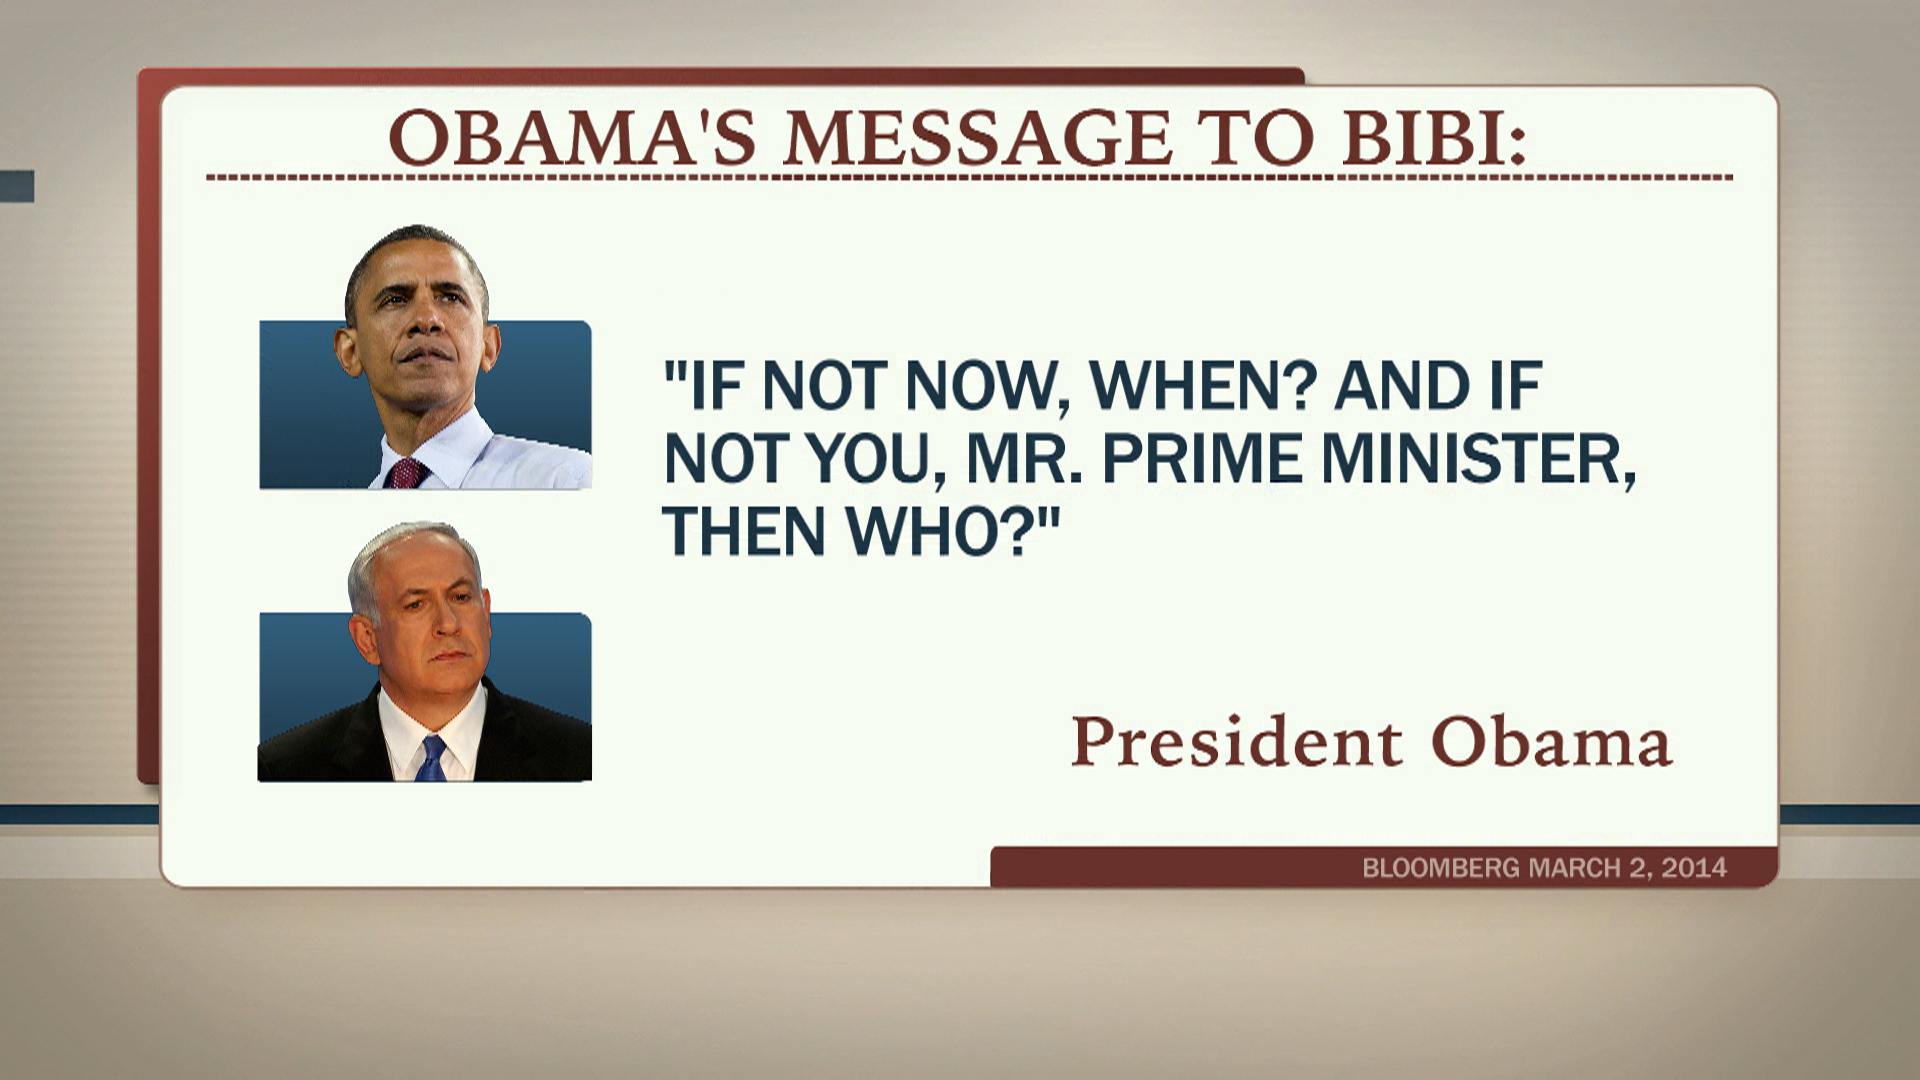 Obama urges Netanyahu to end conflict